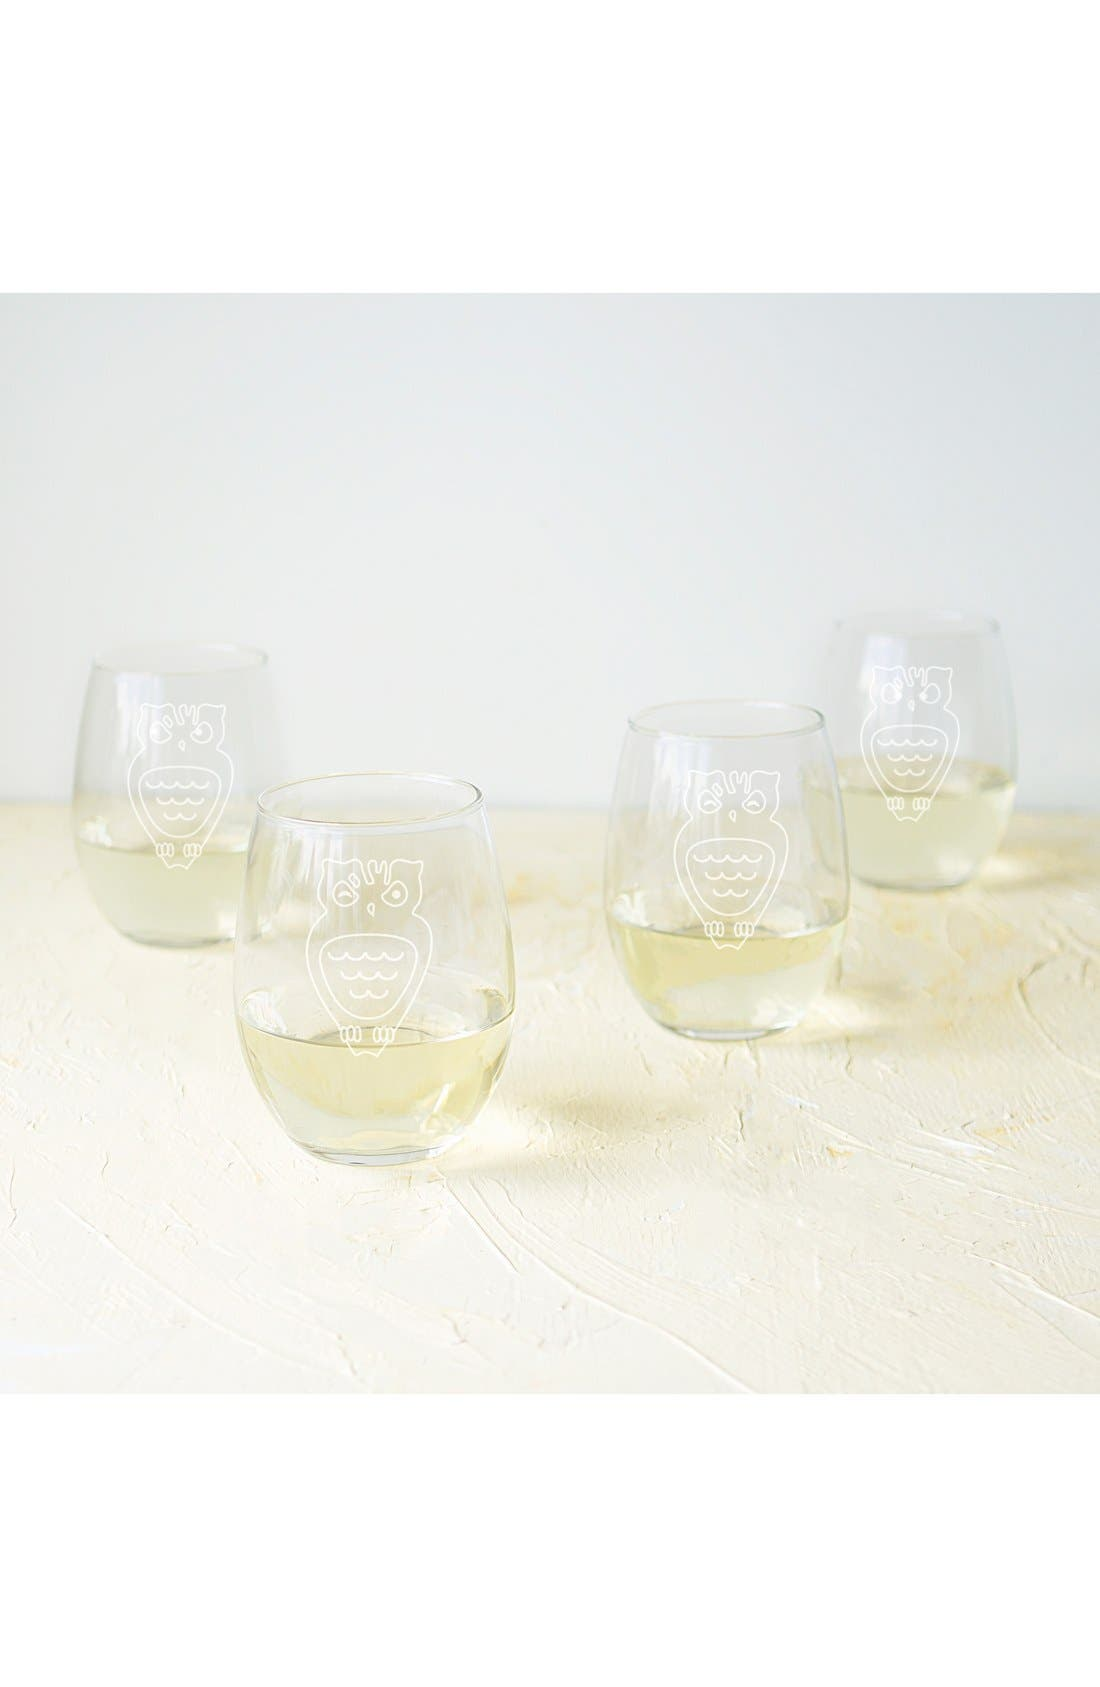 Main Image - Cathy's Concepts Owl Set of 4 Stemless Wine Glasses